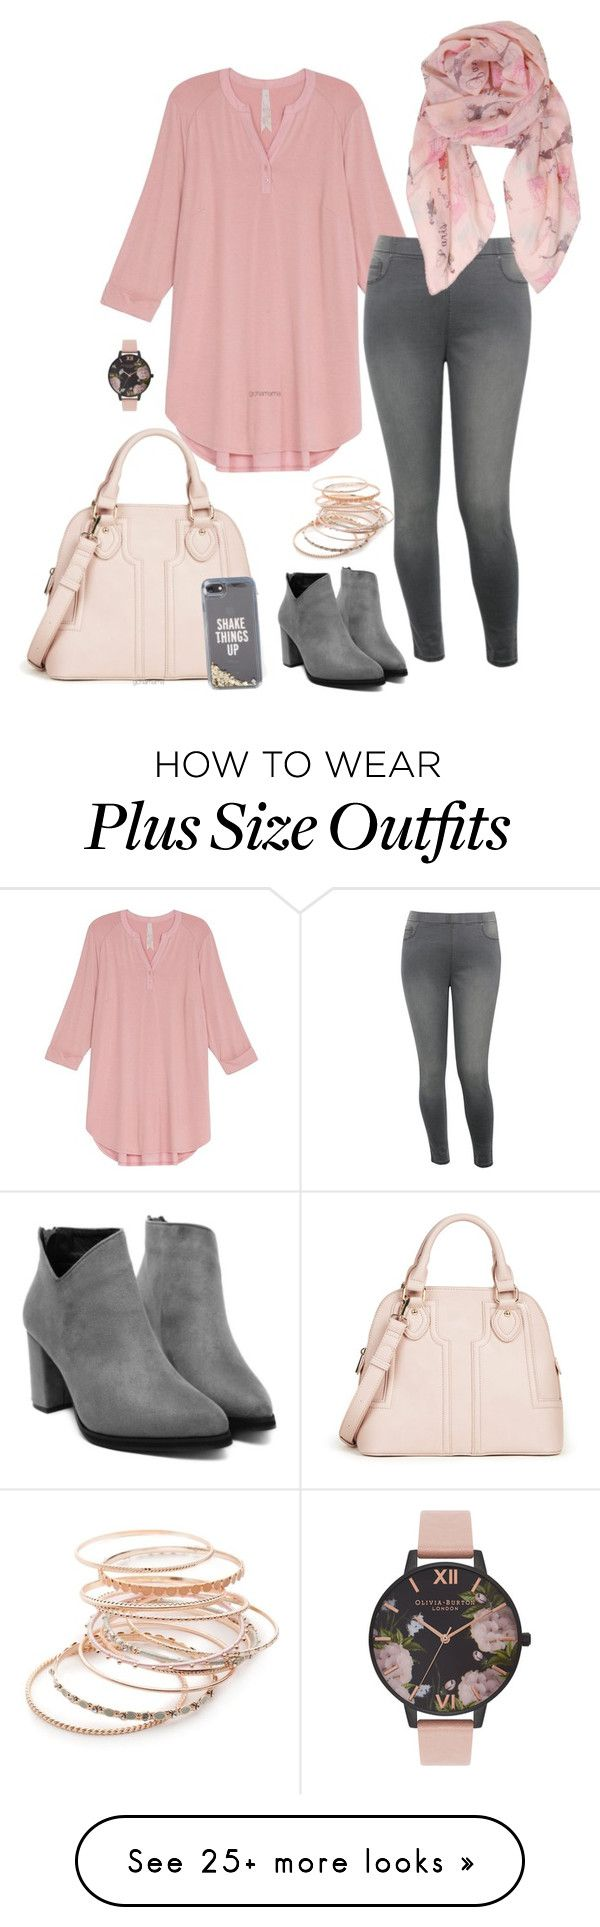 best 25+ plus size ideas on pinterest | plus size style, casual